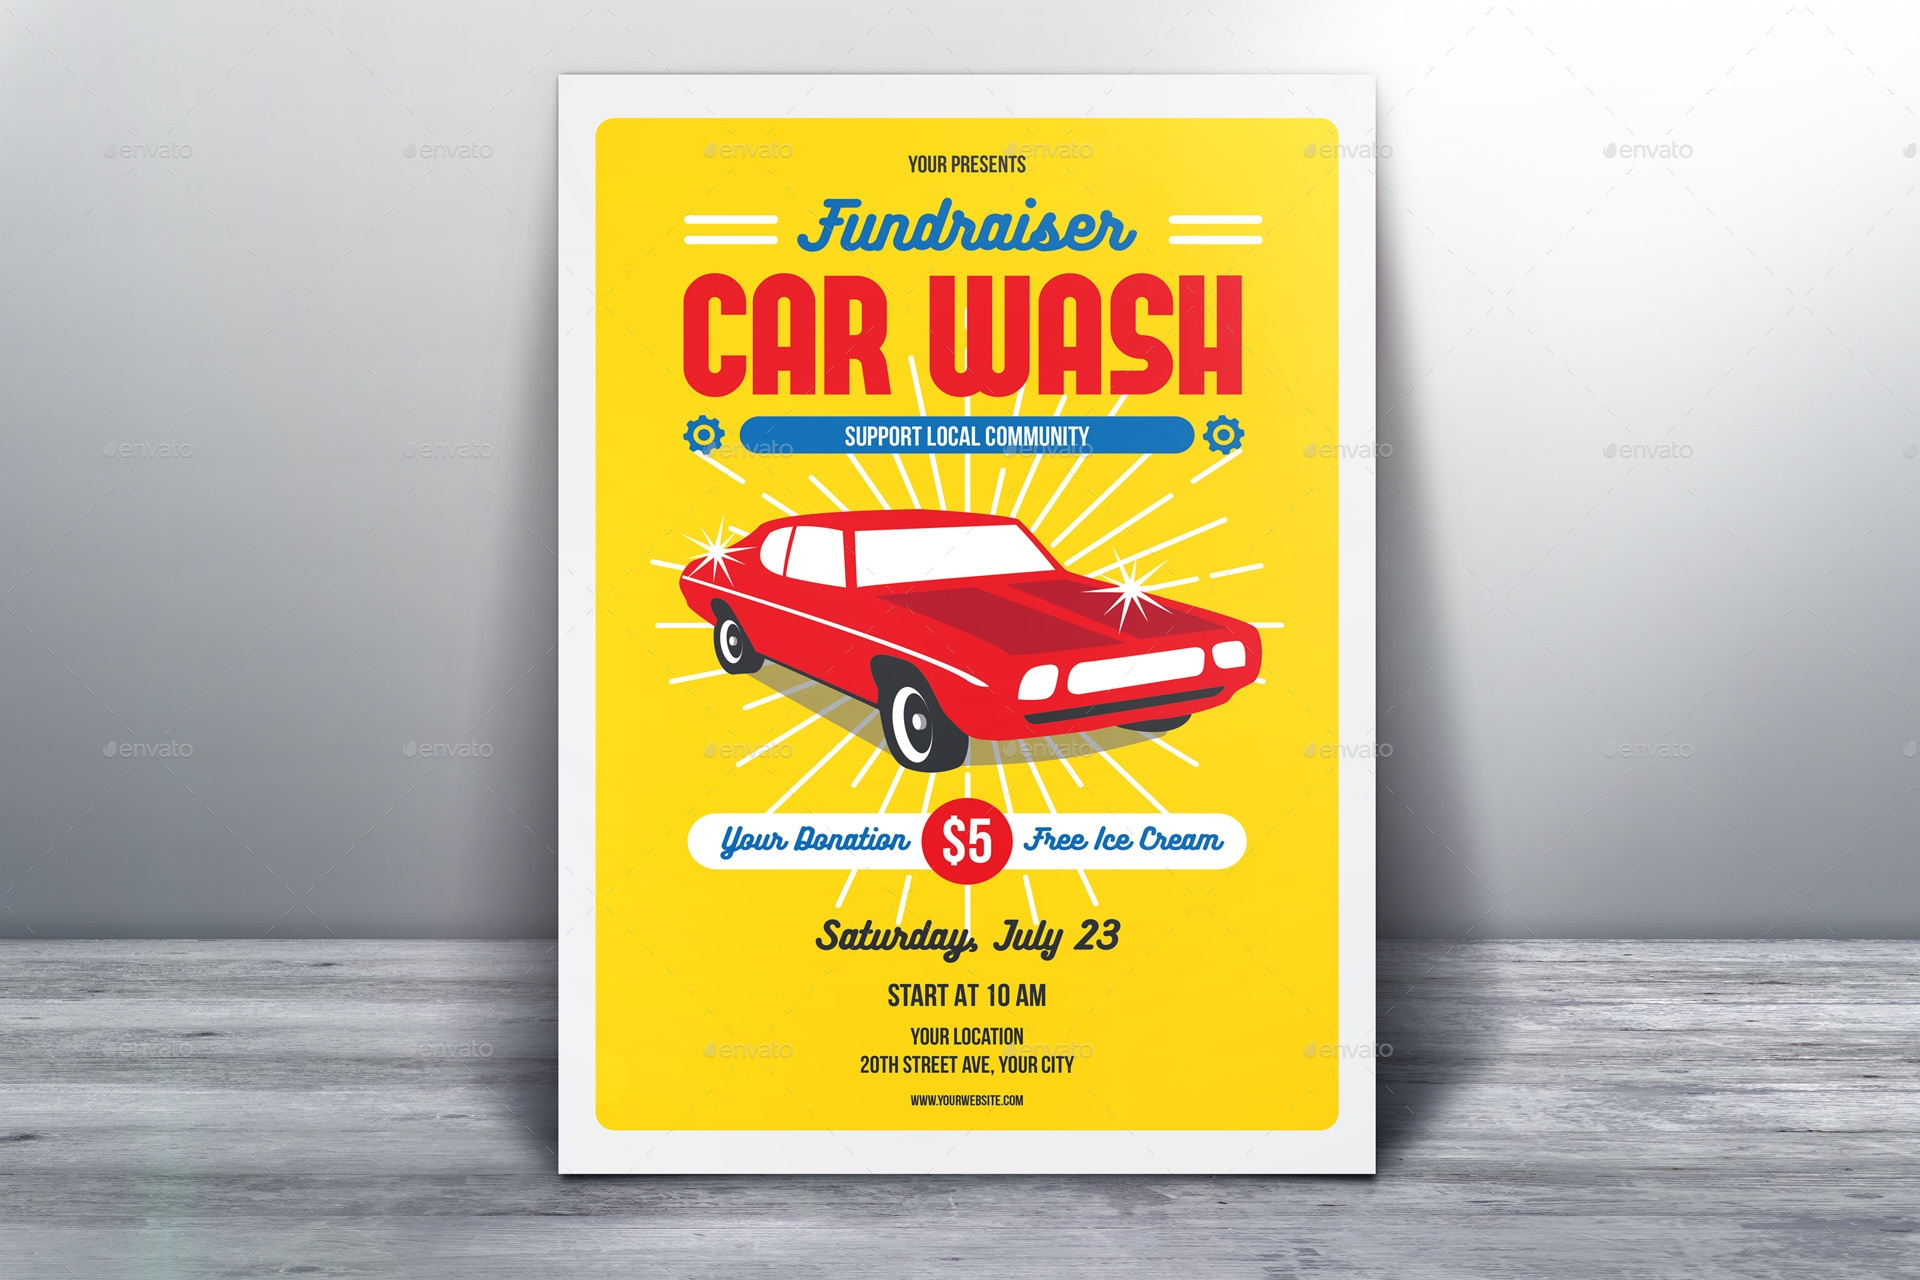 Fundraiser Car Wash Flyer